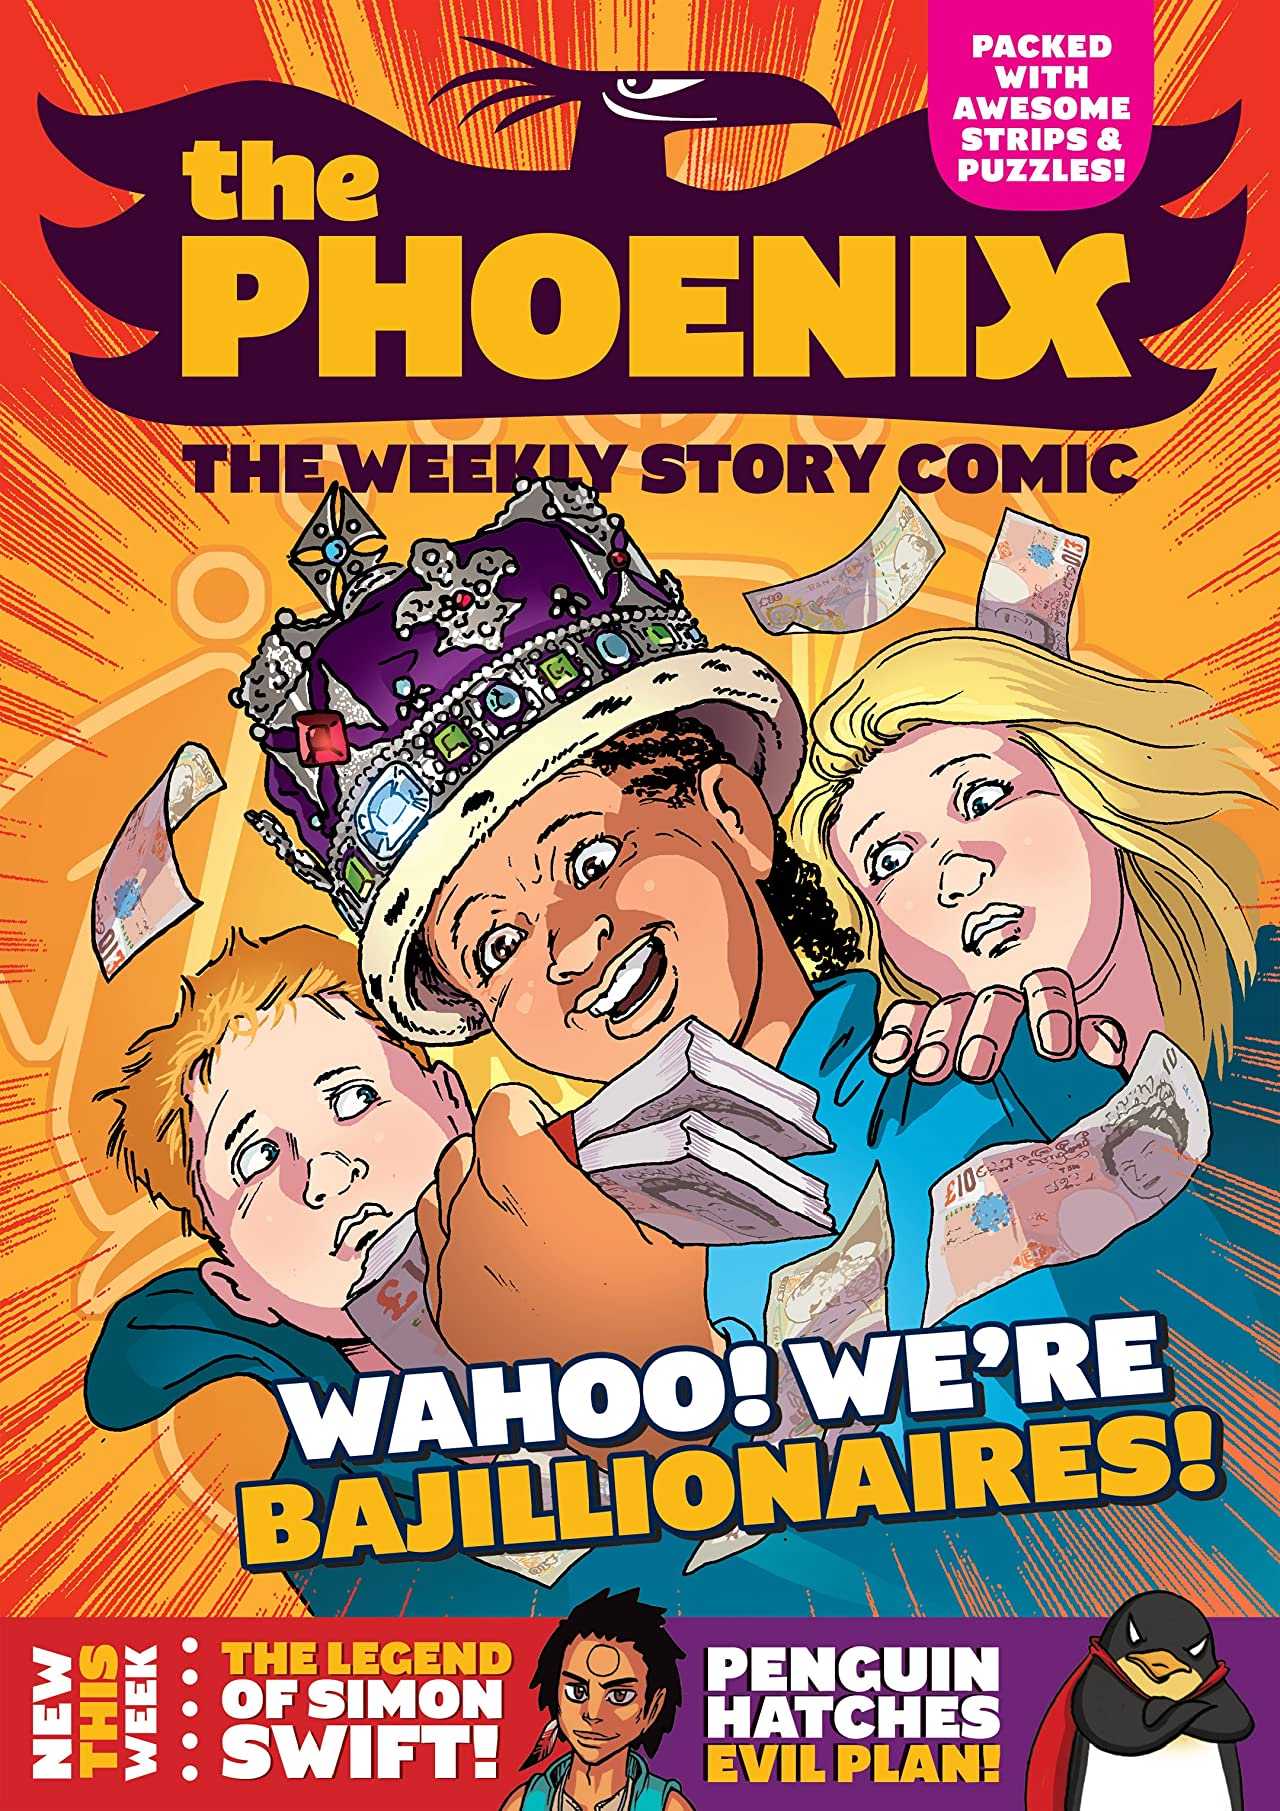 The Phoenix #37: The Weekly Story Comic